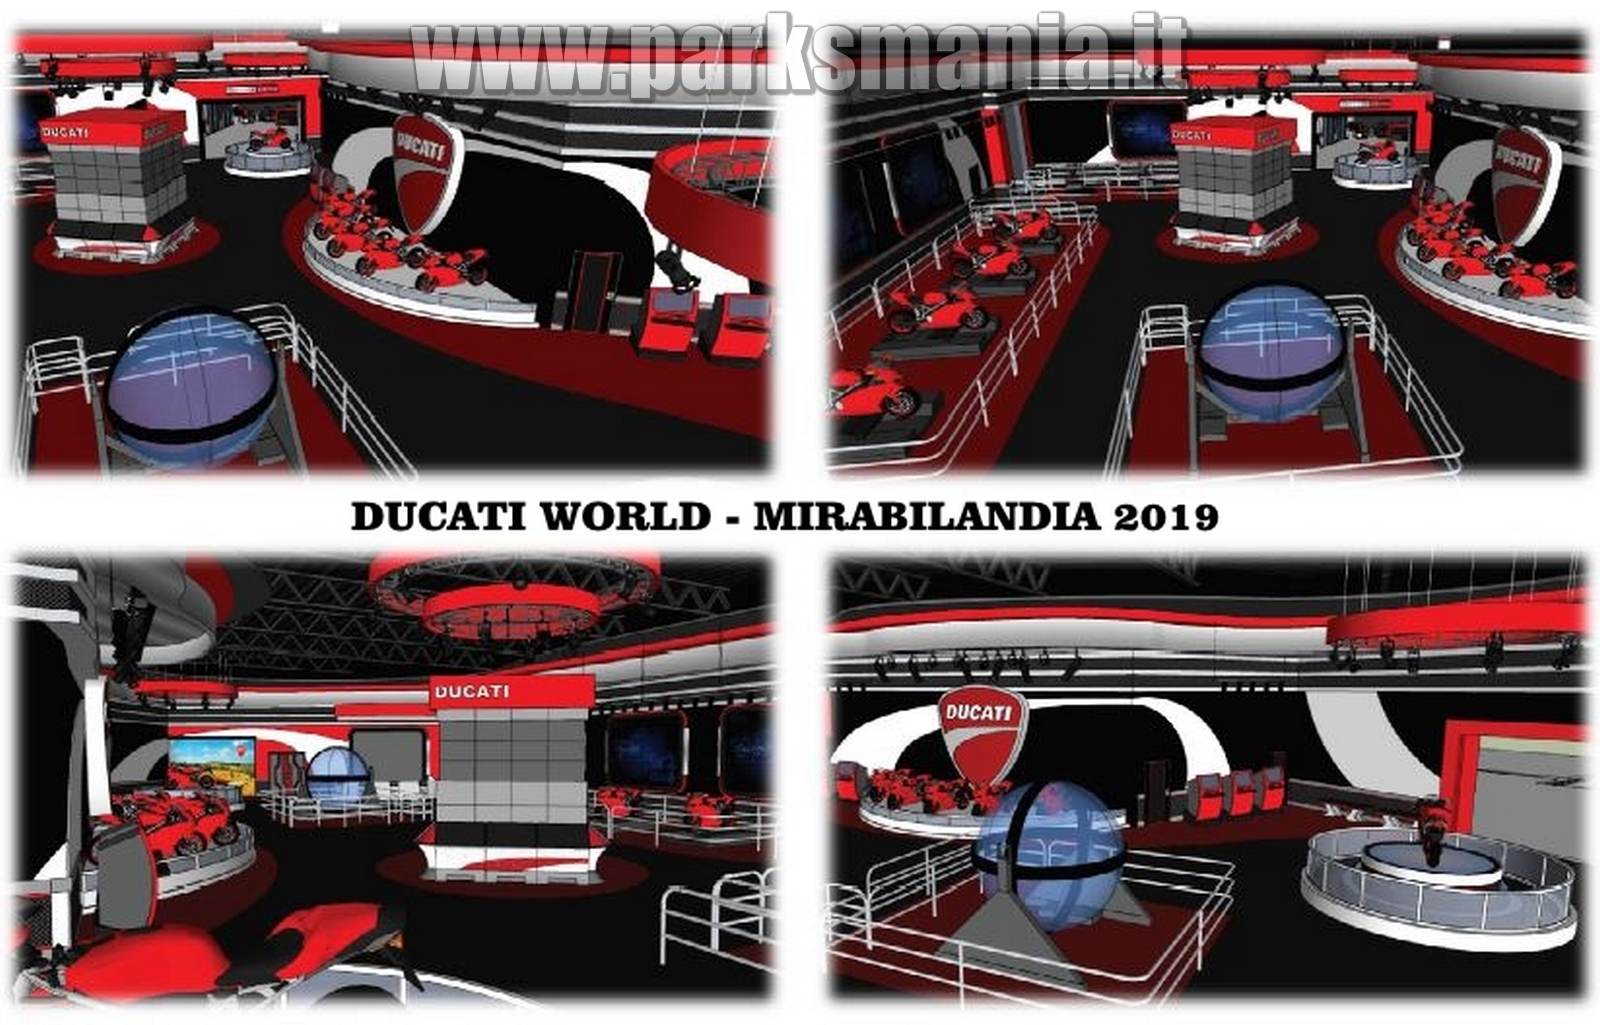 mirabilandia nouveaut 2019 ducati world. Black Bedroom Furniture Sets. Home Design Ideas